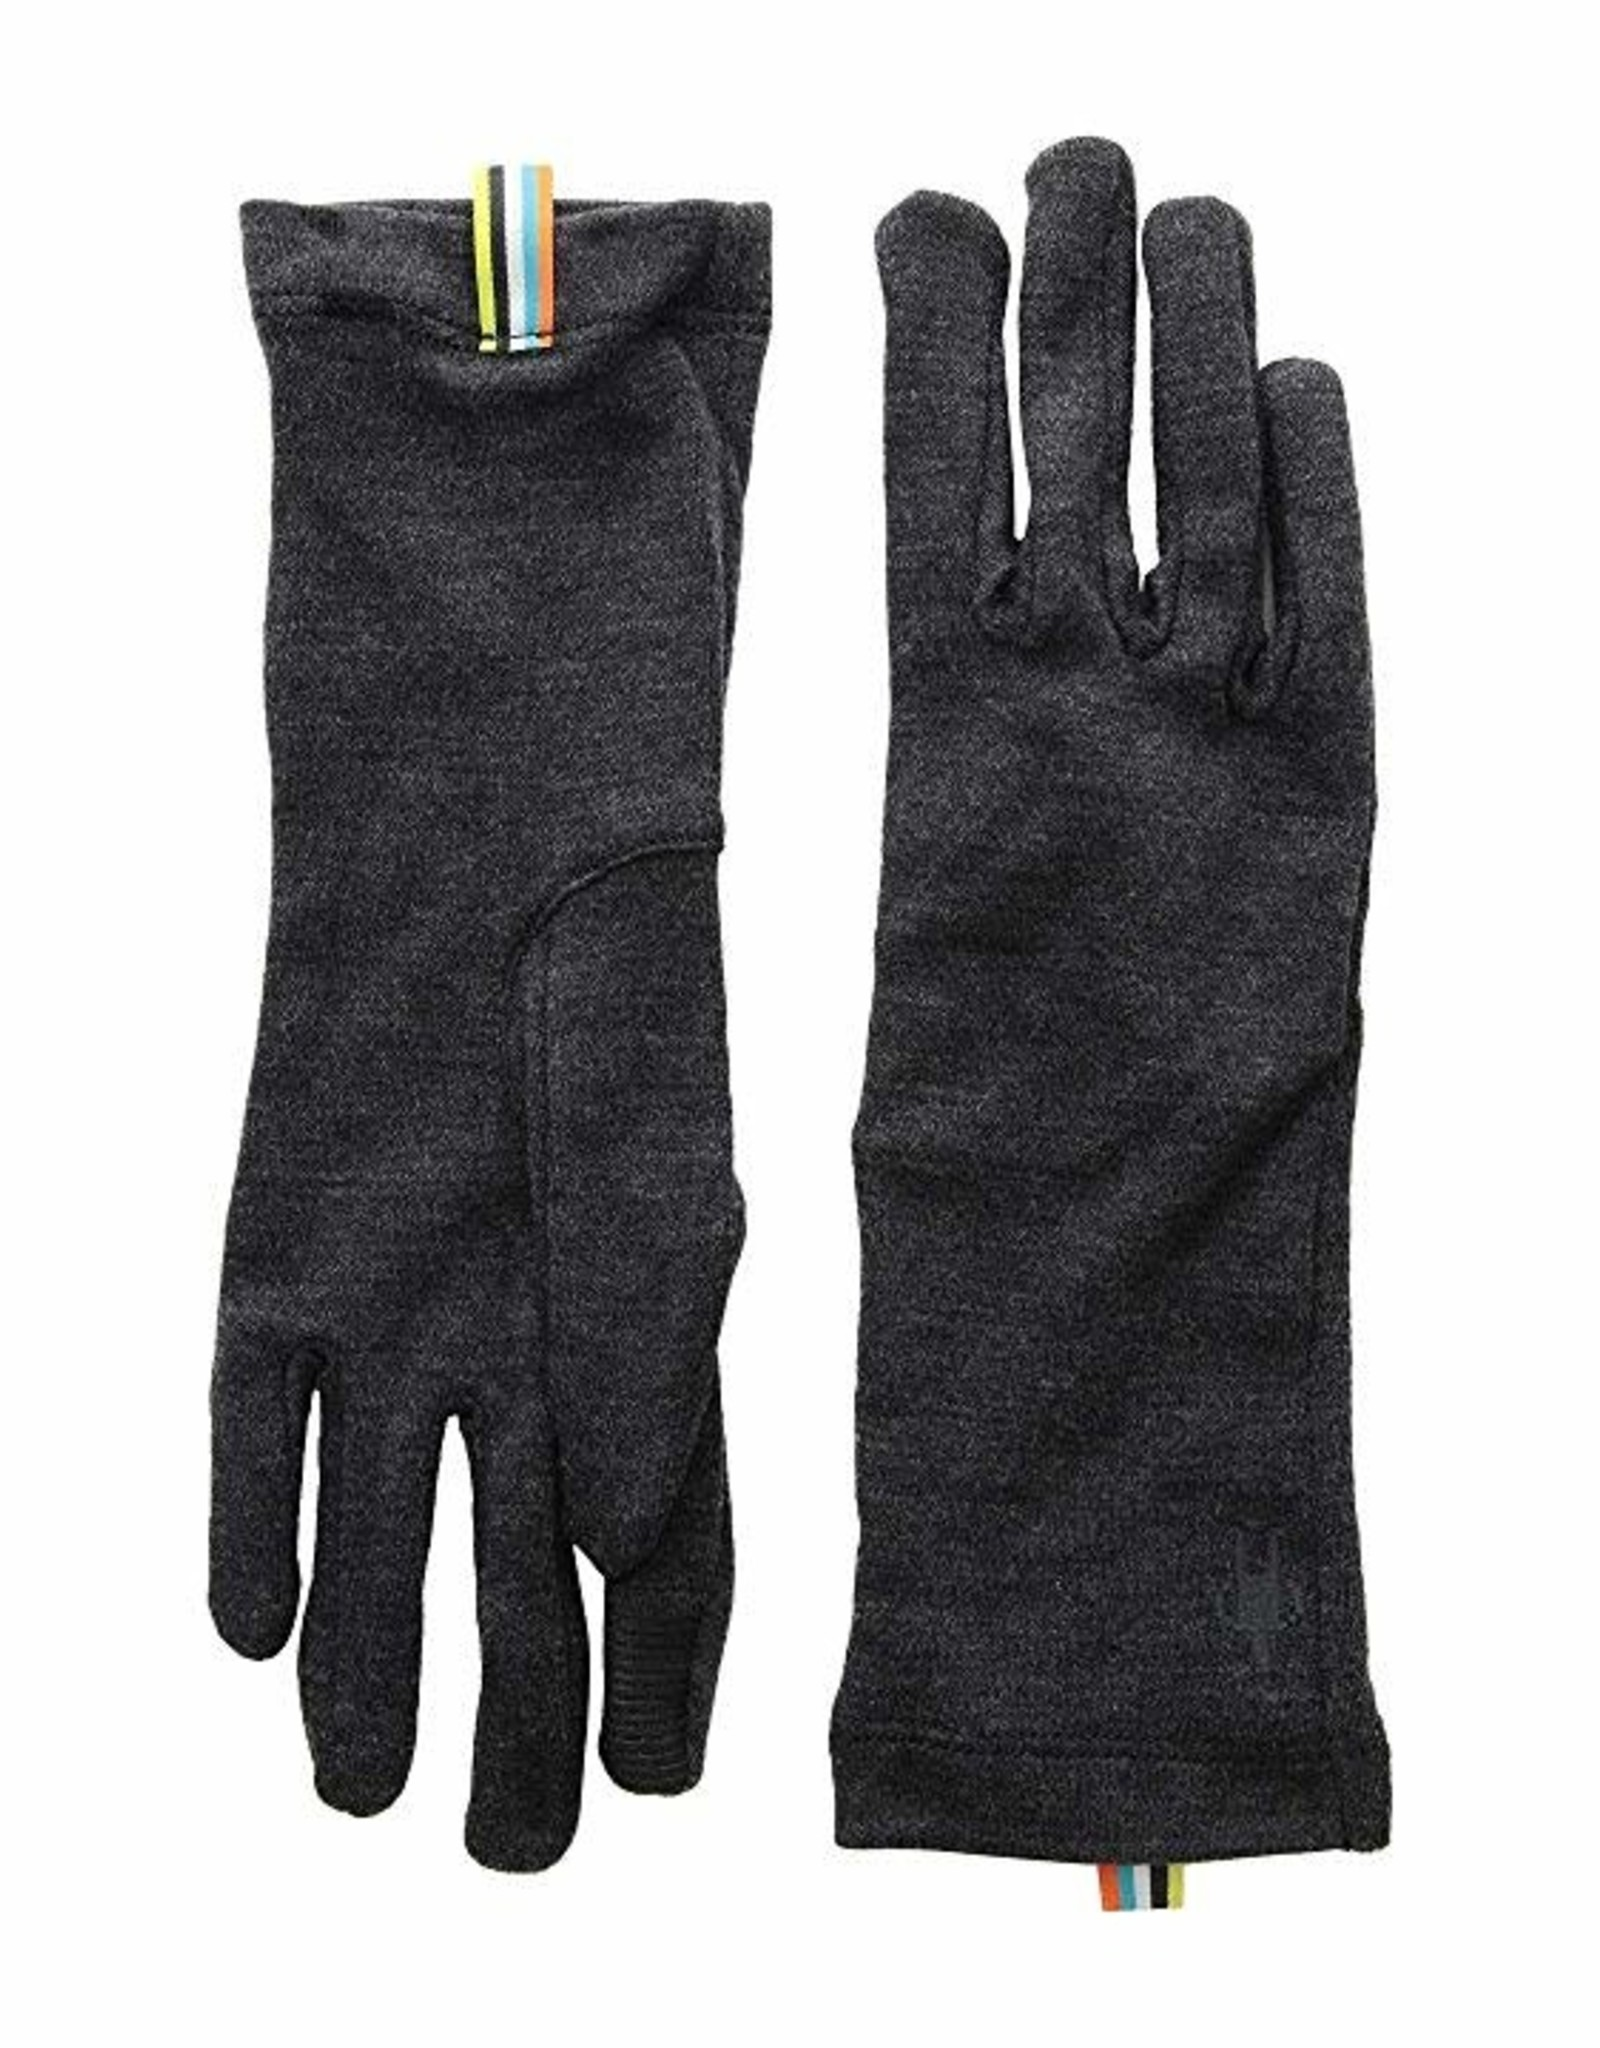 SMARTWOOL SmartWool 250 Glove charcoal